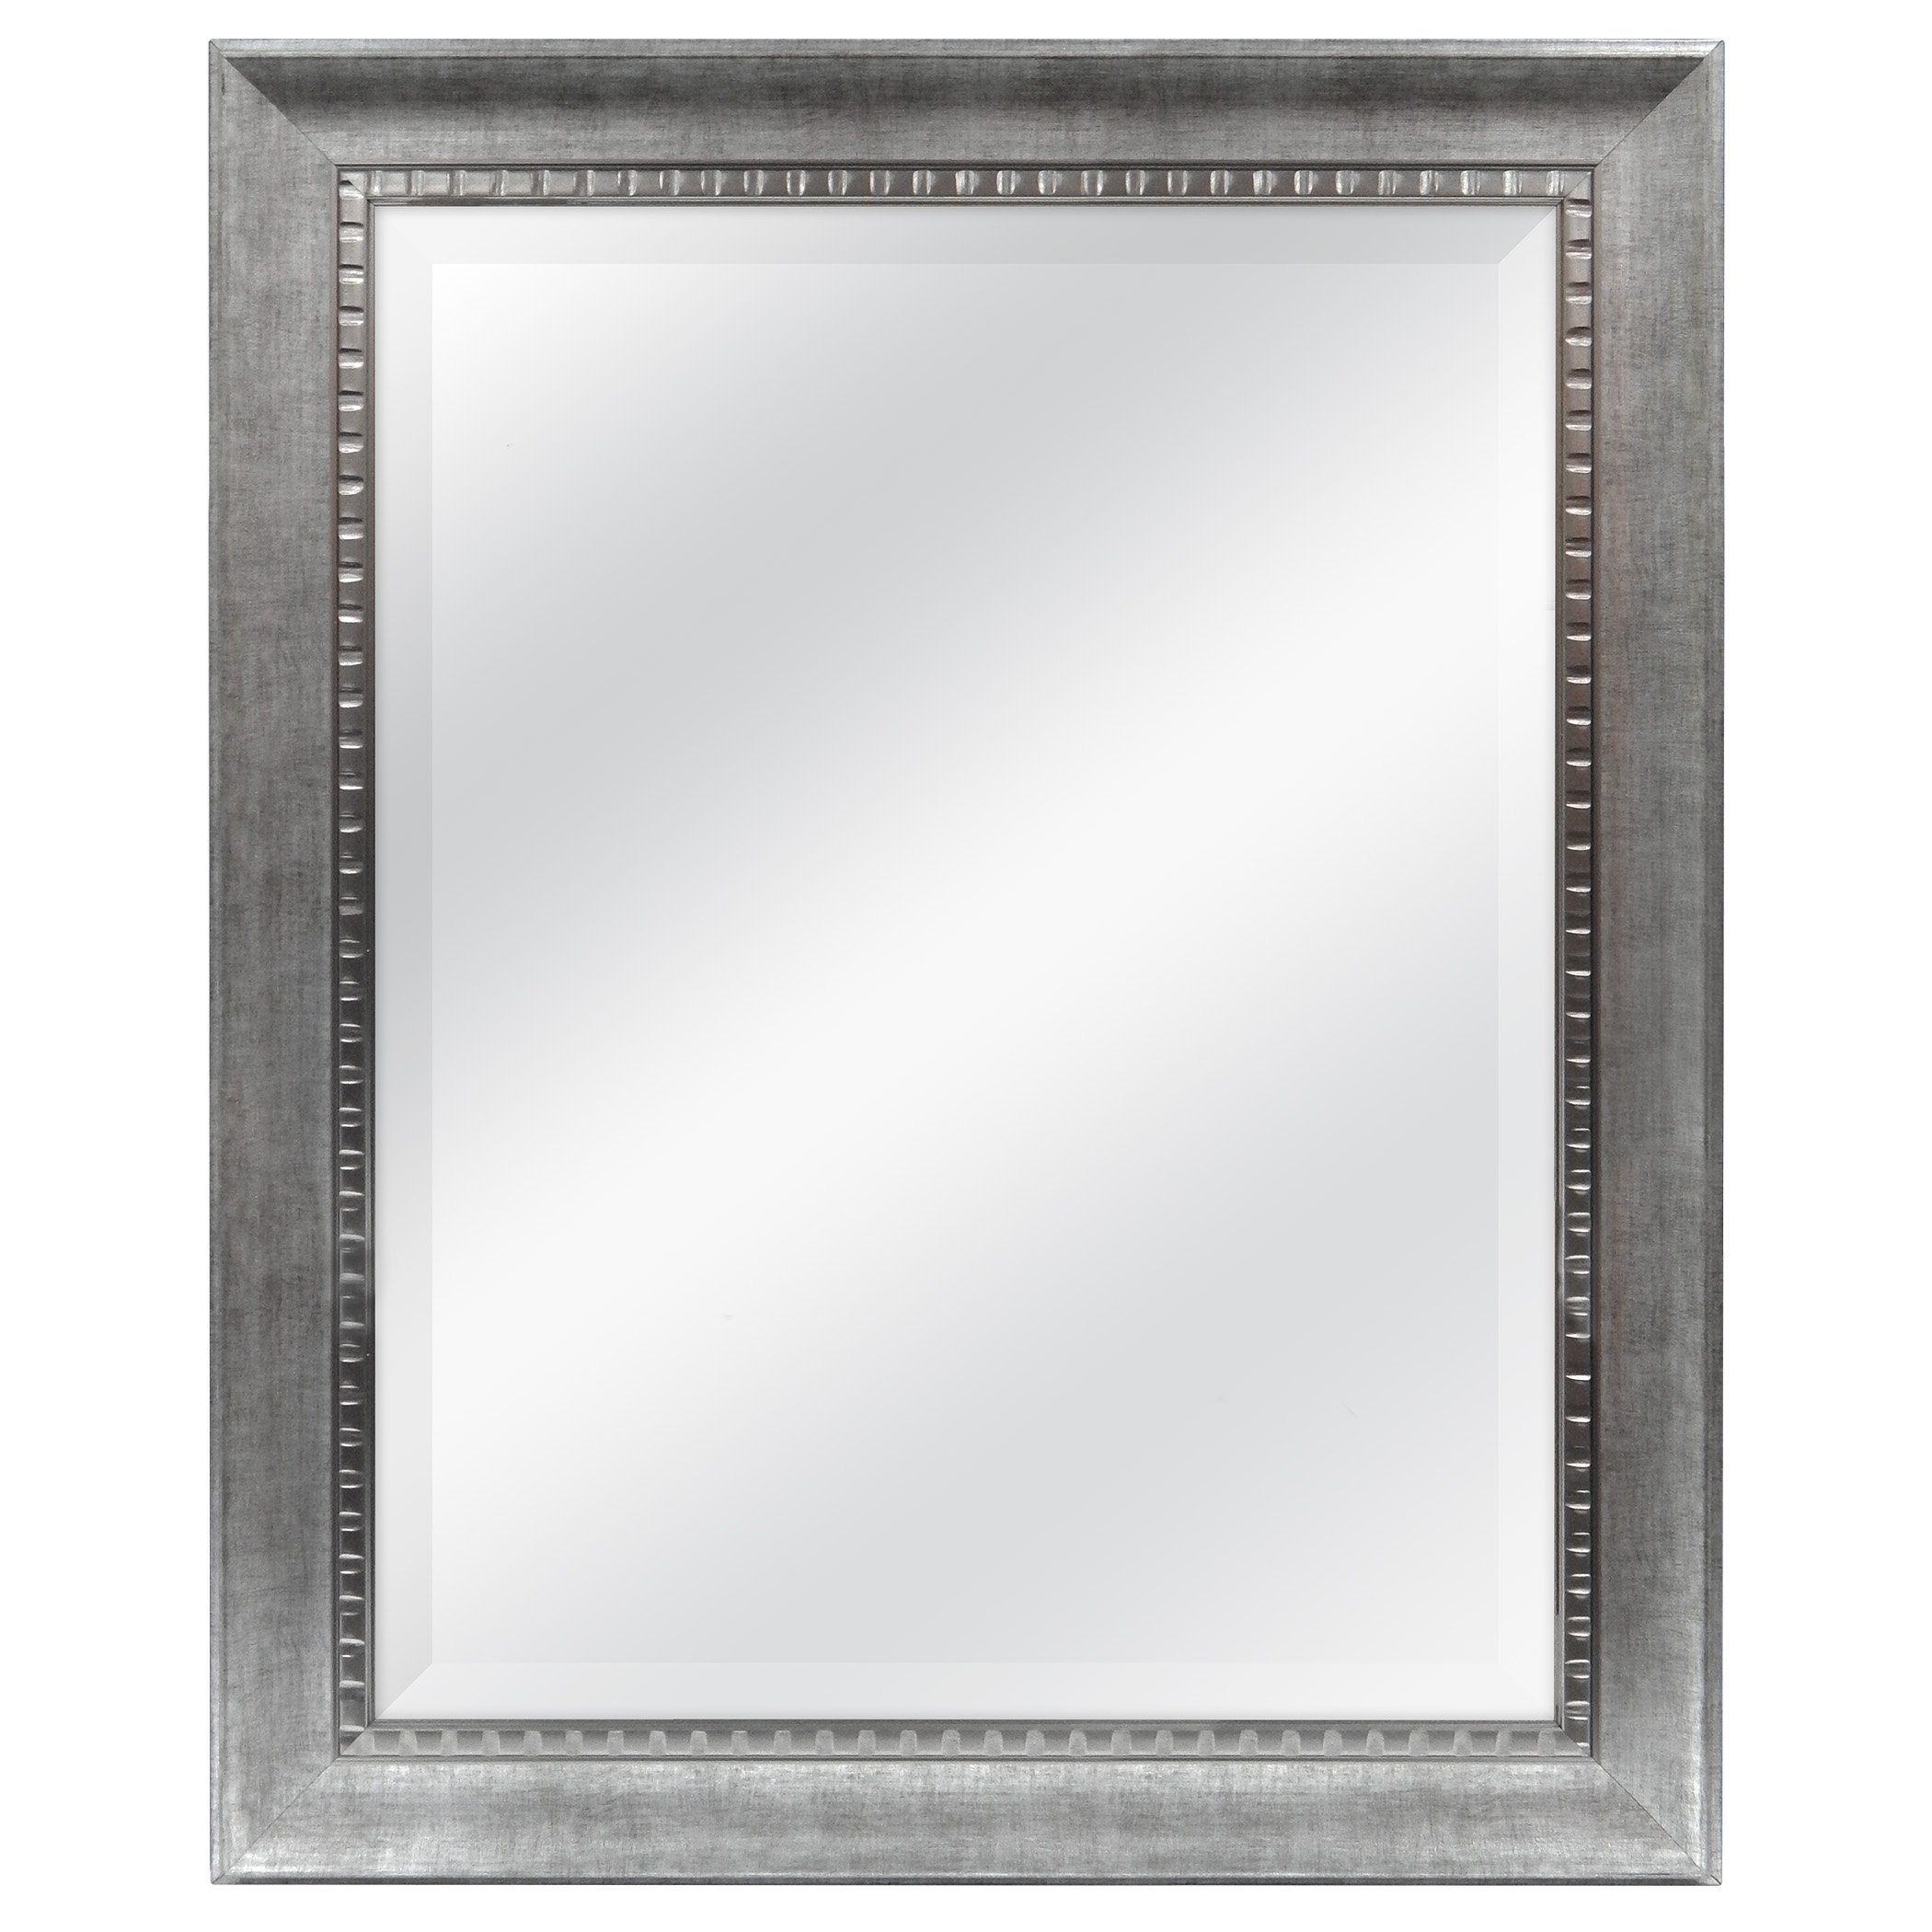 Mcs 275X335 Inch Frame With 22X8 Inch Sloped Mirror, Silver